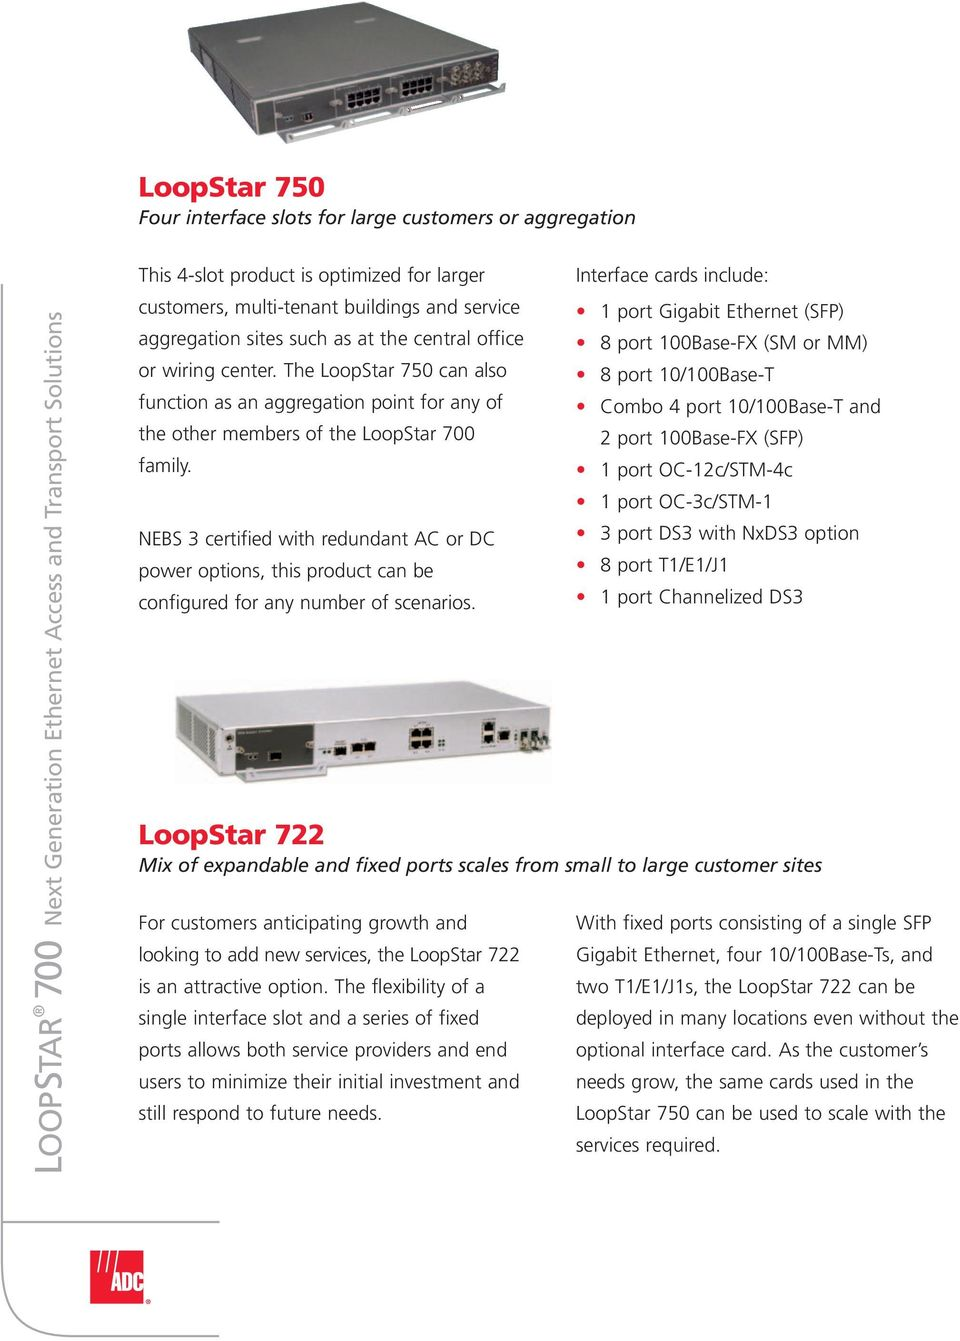 NEBS 3 certified with redundant AC or DC power options, this product can be configured for any number of scenarios.